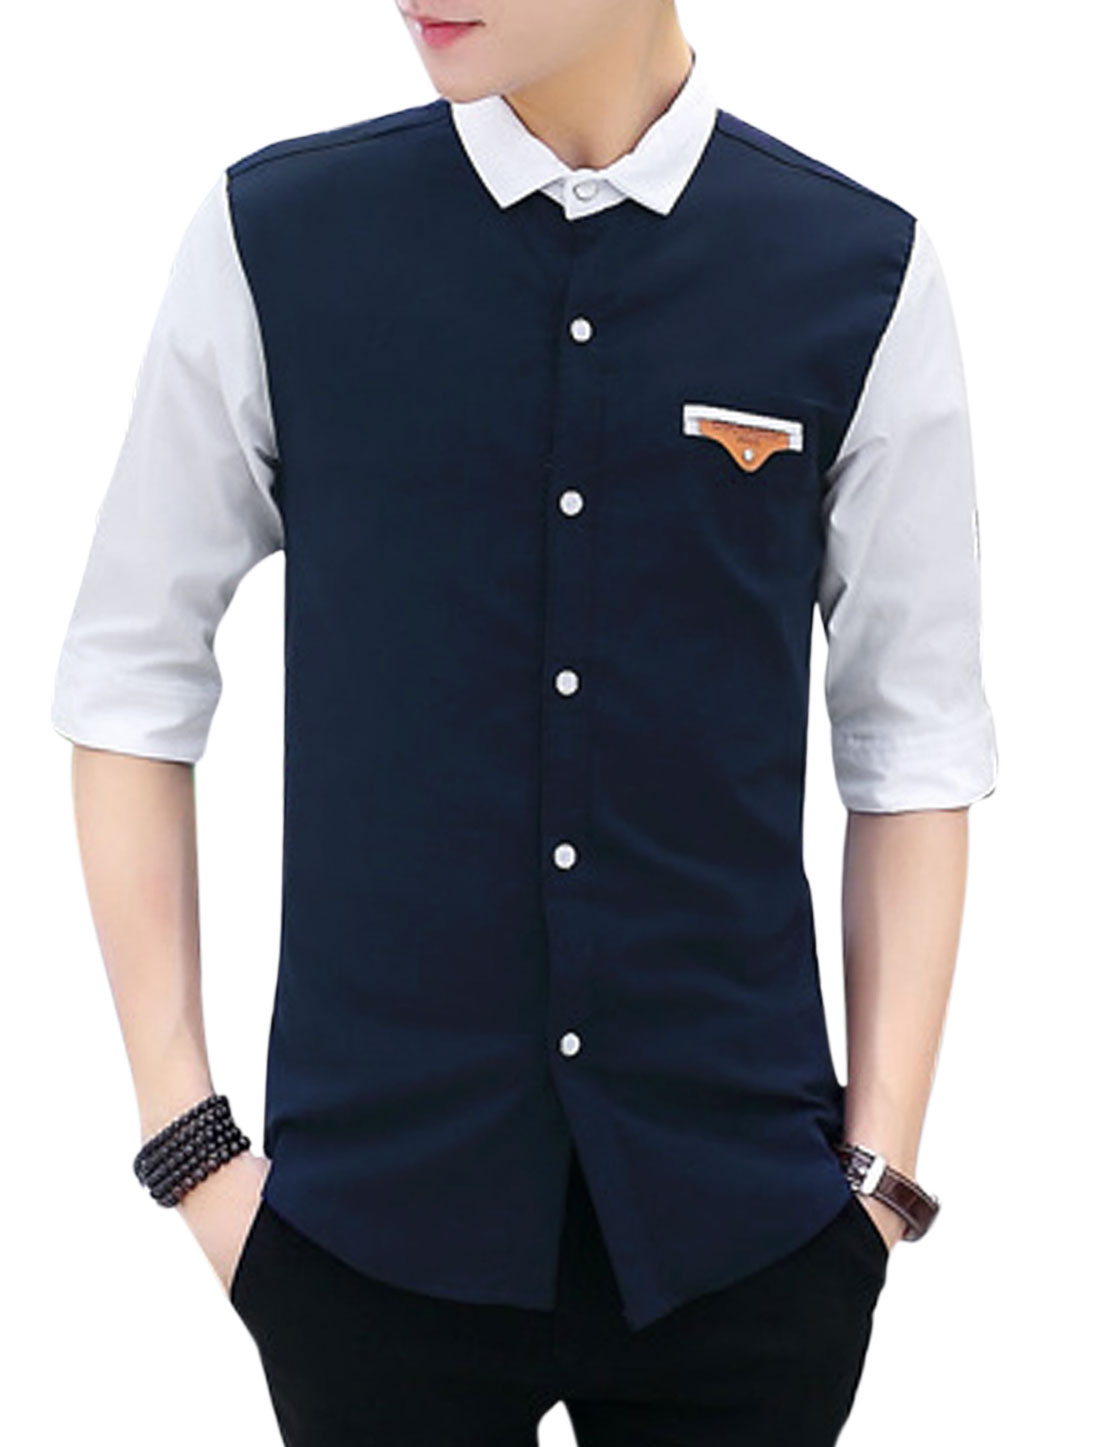 Man Contrast Color Turn Down Collar Half Length Sleeves Casual Shirt Navy Blue M